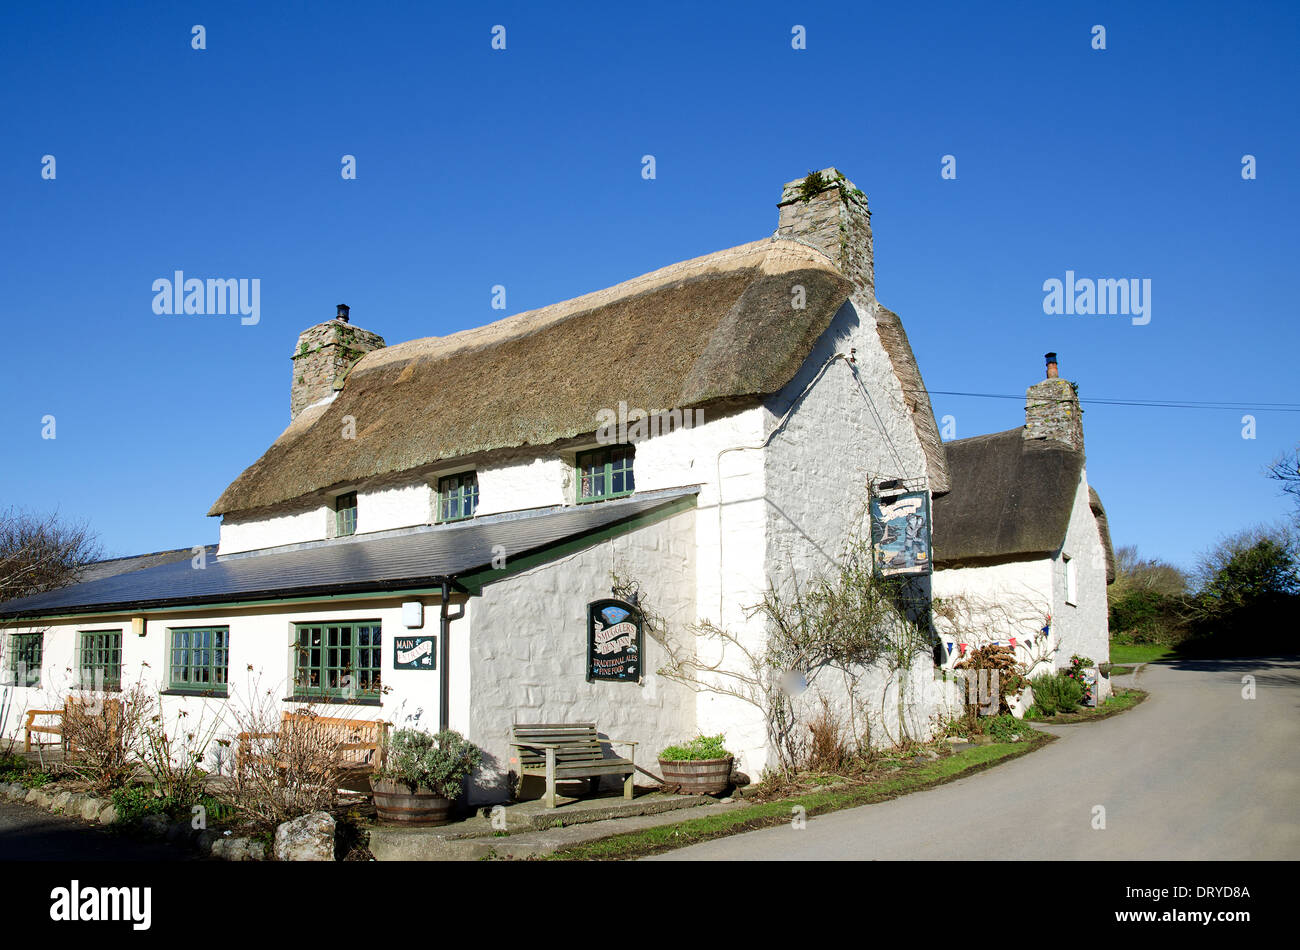 Th e Smugglers Inn near Cubert in Cornwall, UK - Stock Image